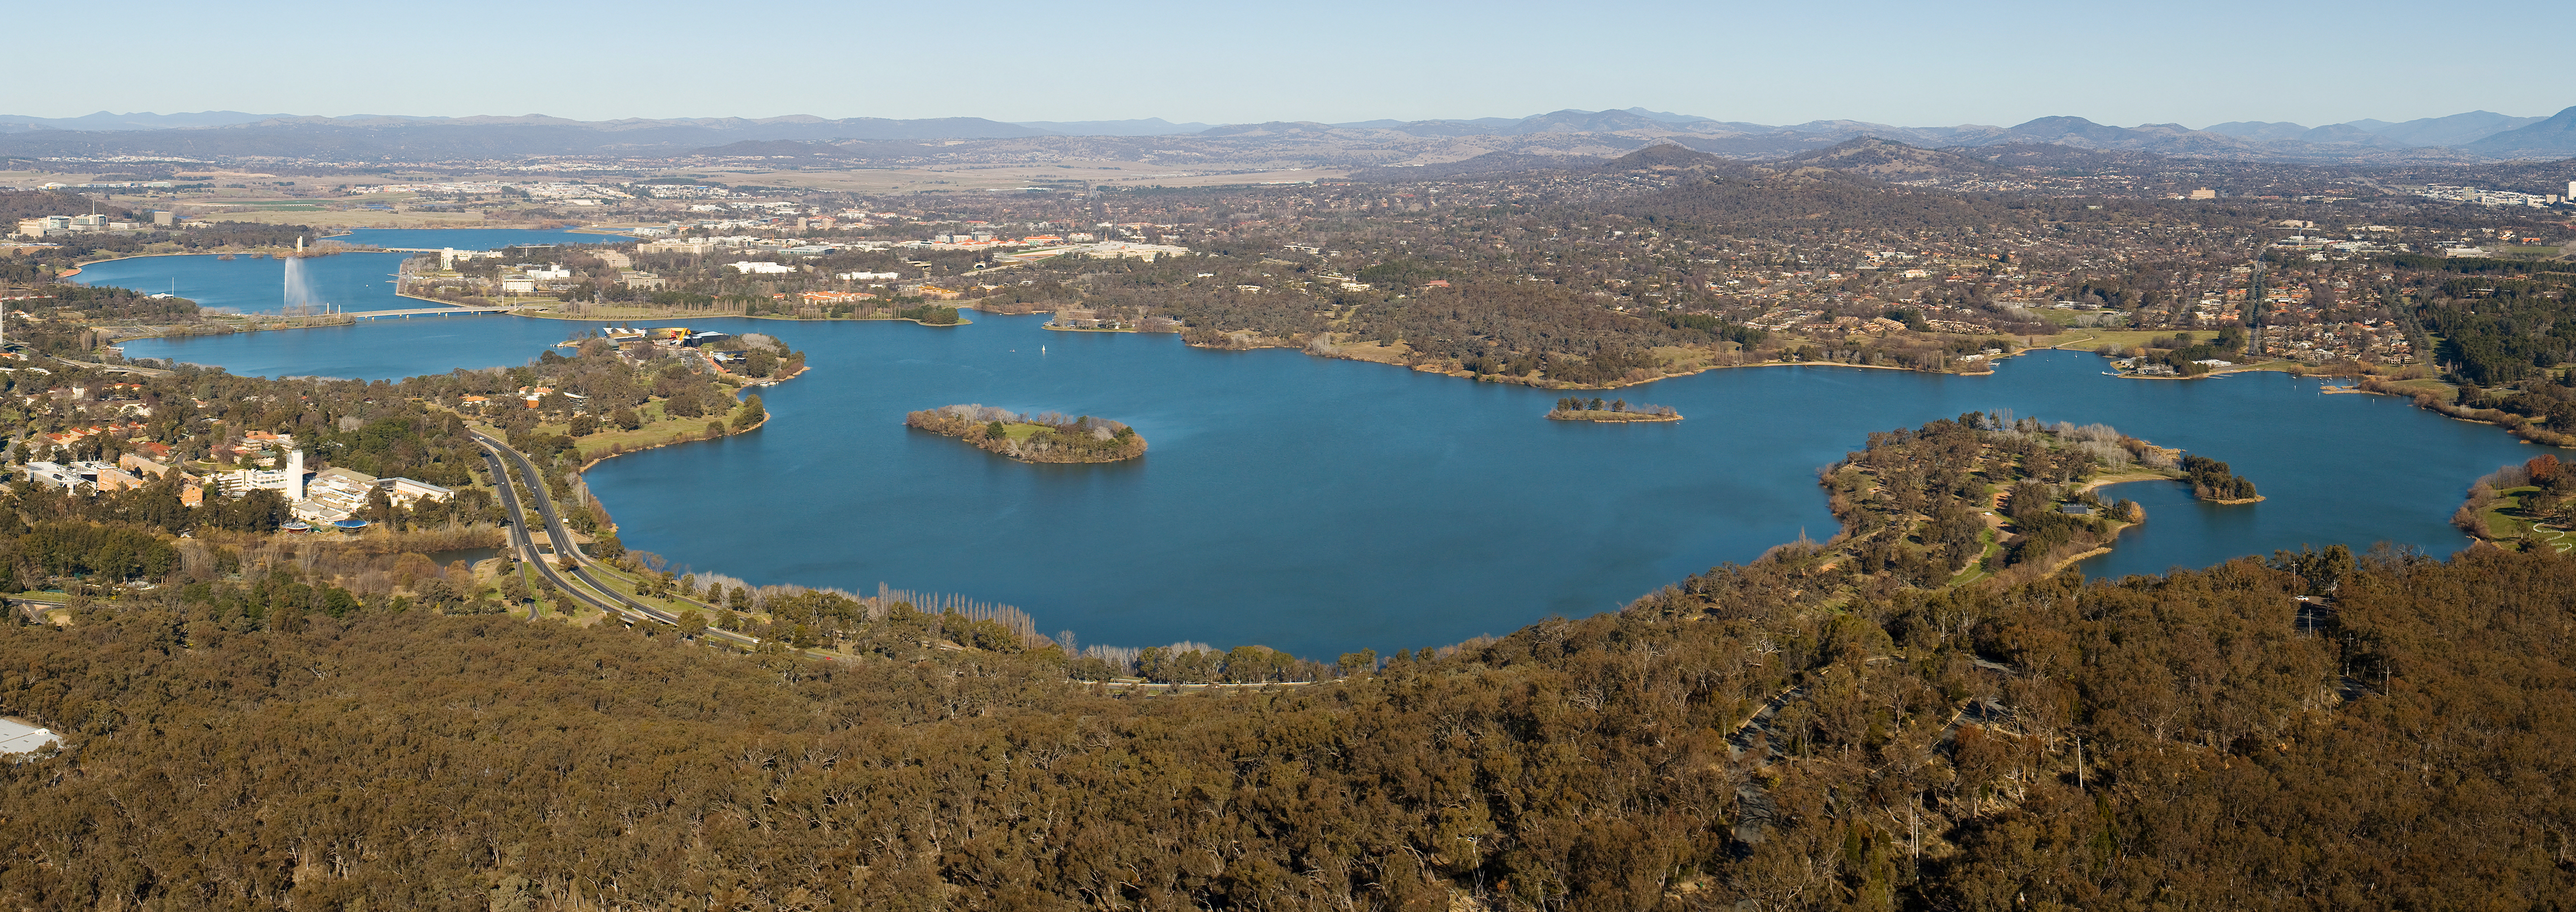 Lake Burley Griffin - Wikipedia